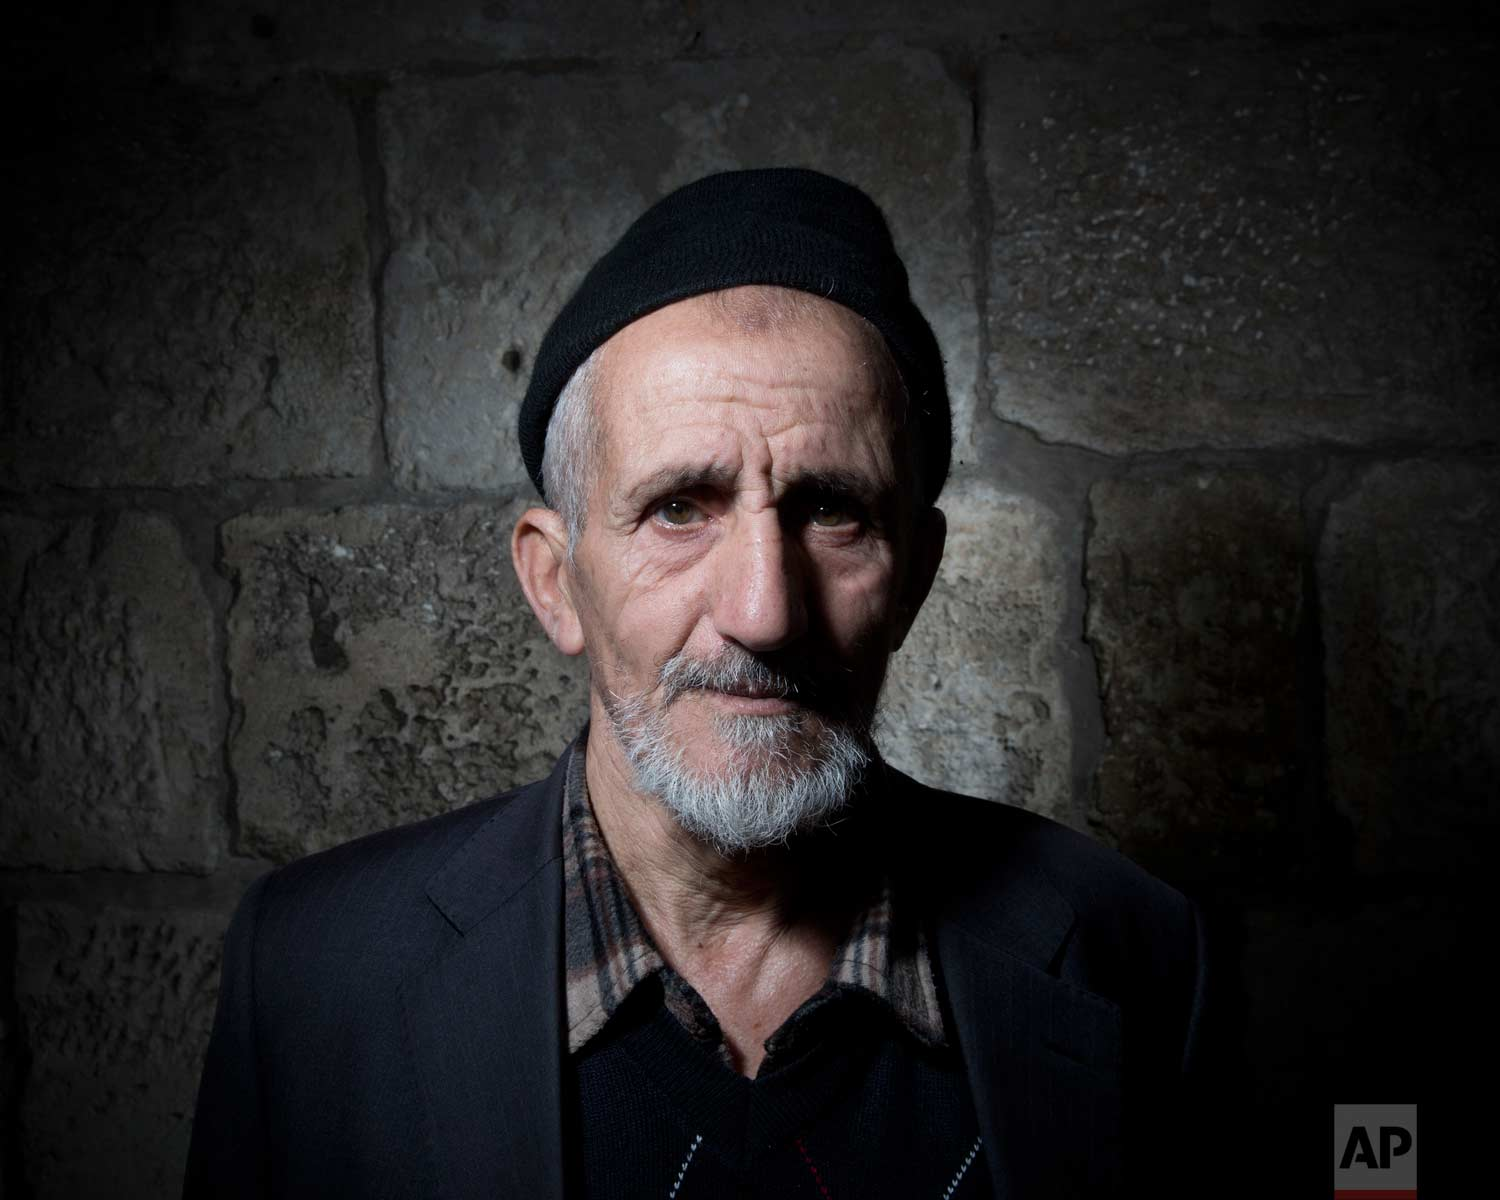 In this Sunday, Feb. 11, 2018 photo, Palestinian Mohammed Asmai poses for a portrait in Jerusalem's Old City. (AP Photo/Oded Balilty)